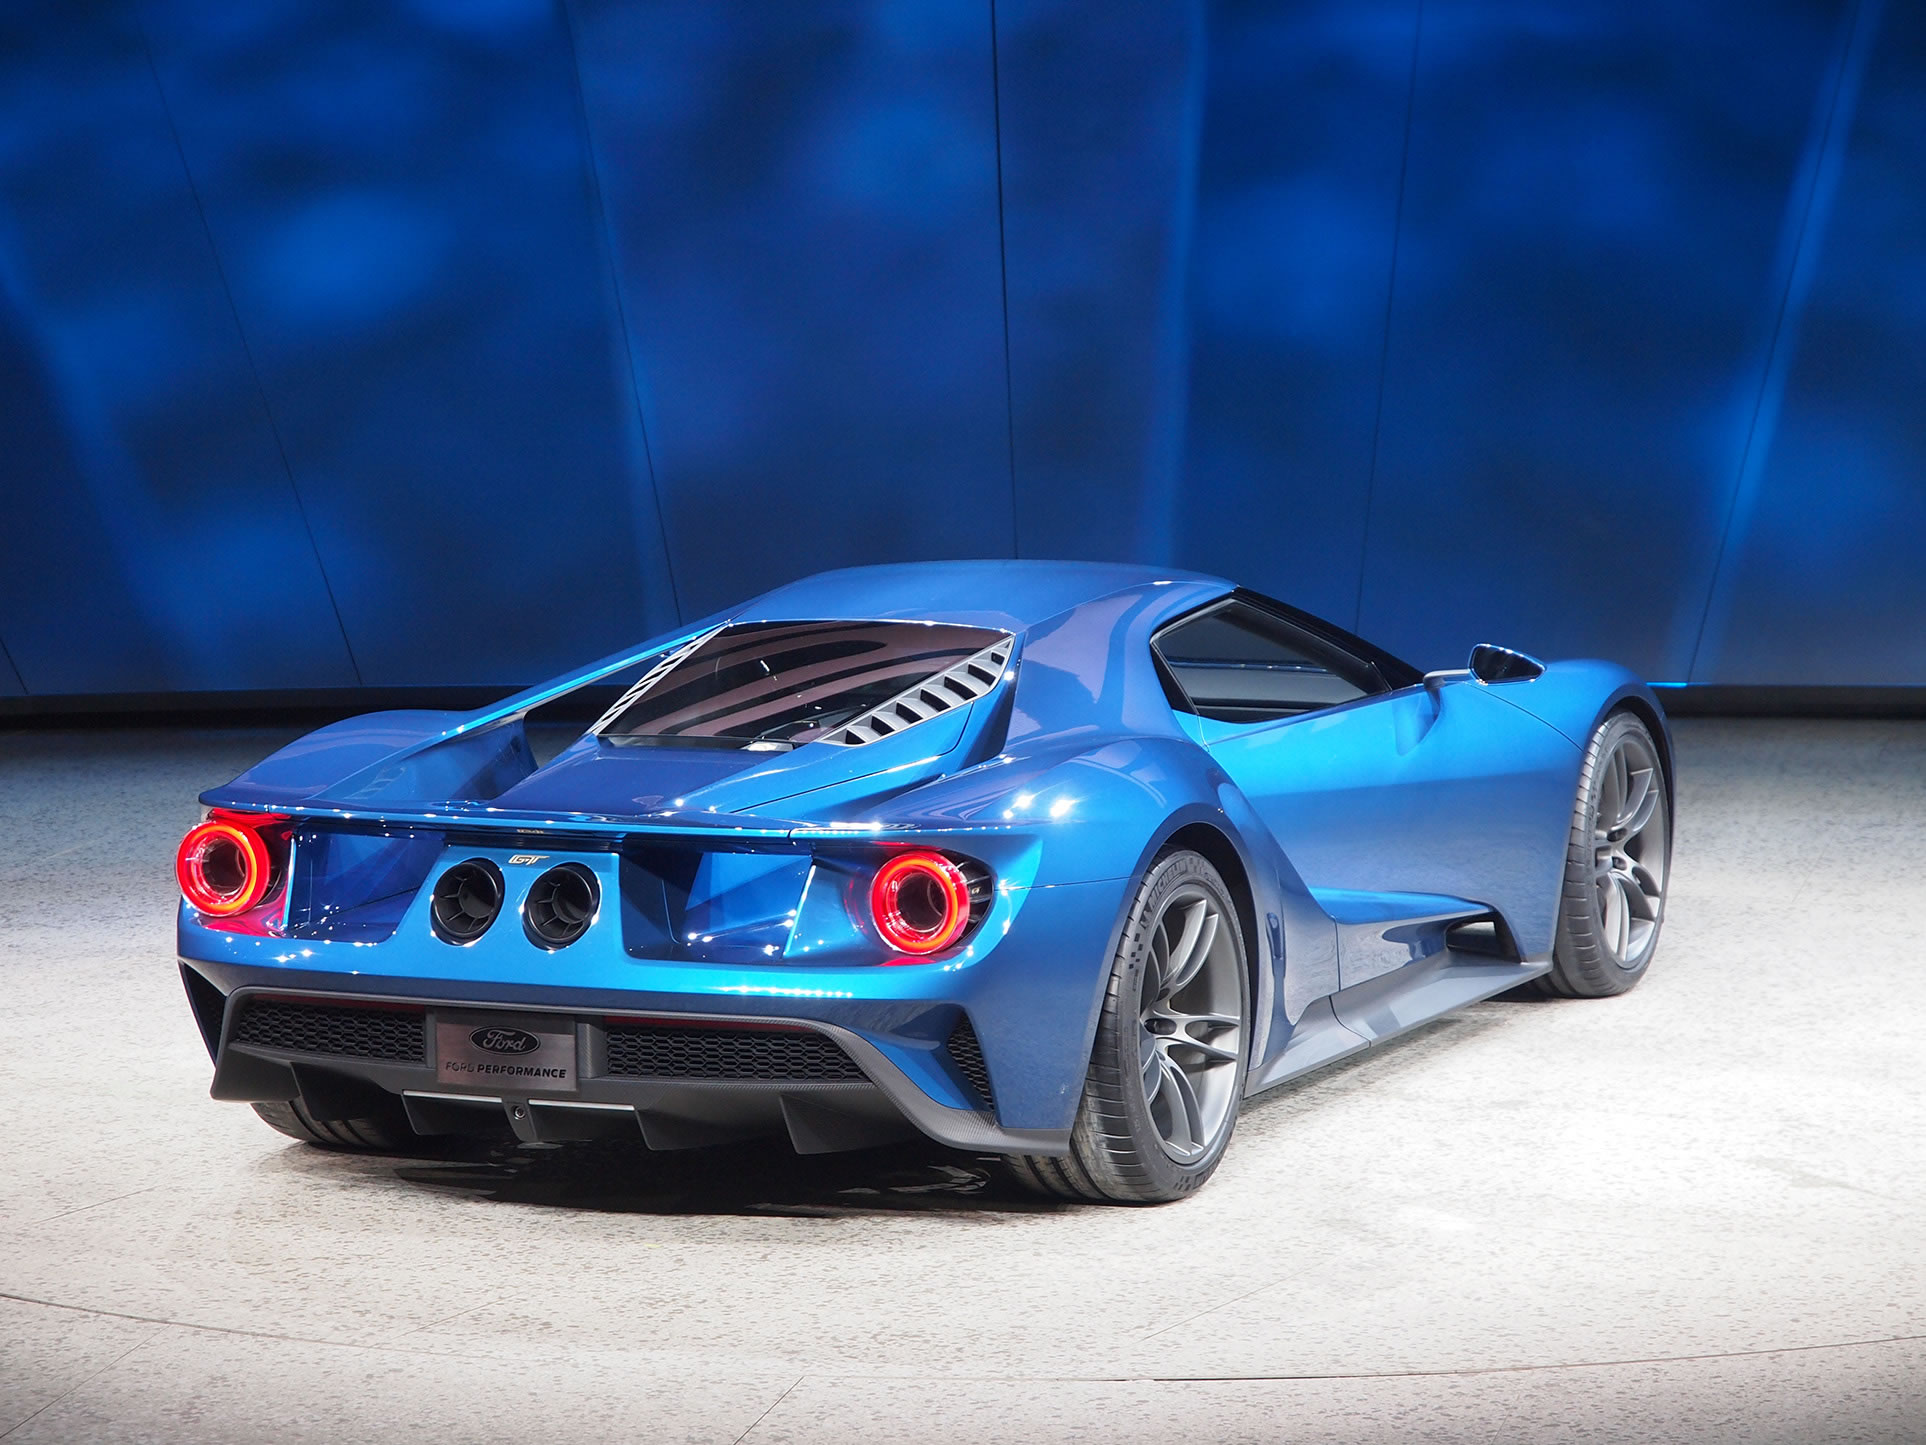 2017 Ford GT at 2015 NAIAS   rear photo Blue Oval supercar size 1926 1926x1445